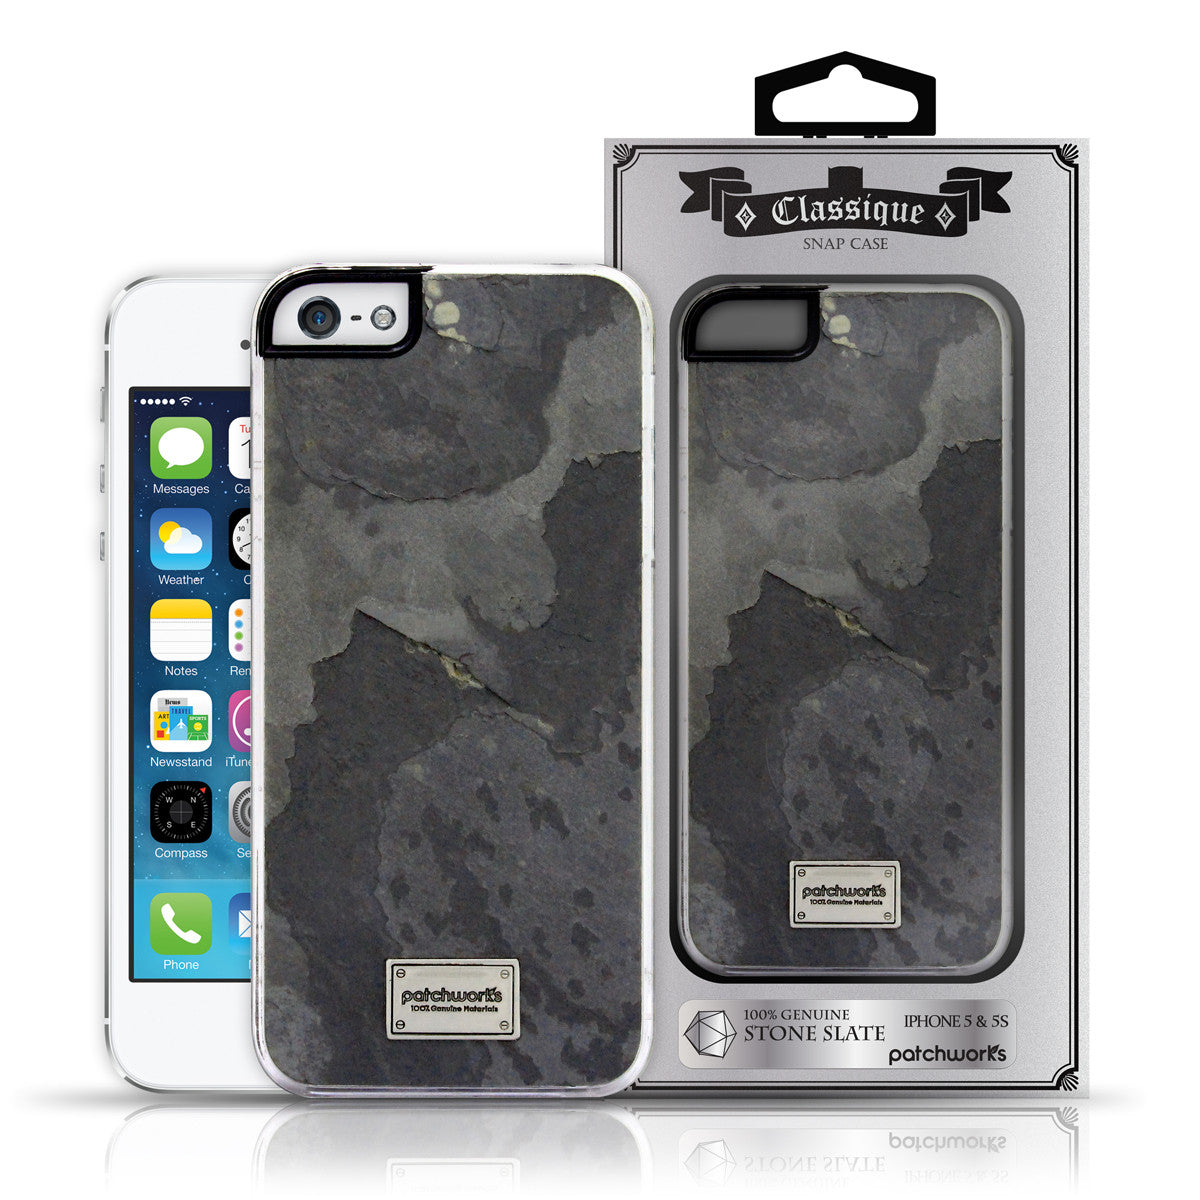 iPhone SE / 5s / 5 Snap case CLASSIQUE STONE SLATE - Patchworks Global Inc - 6